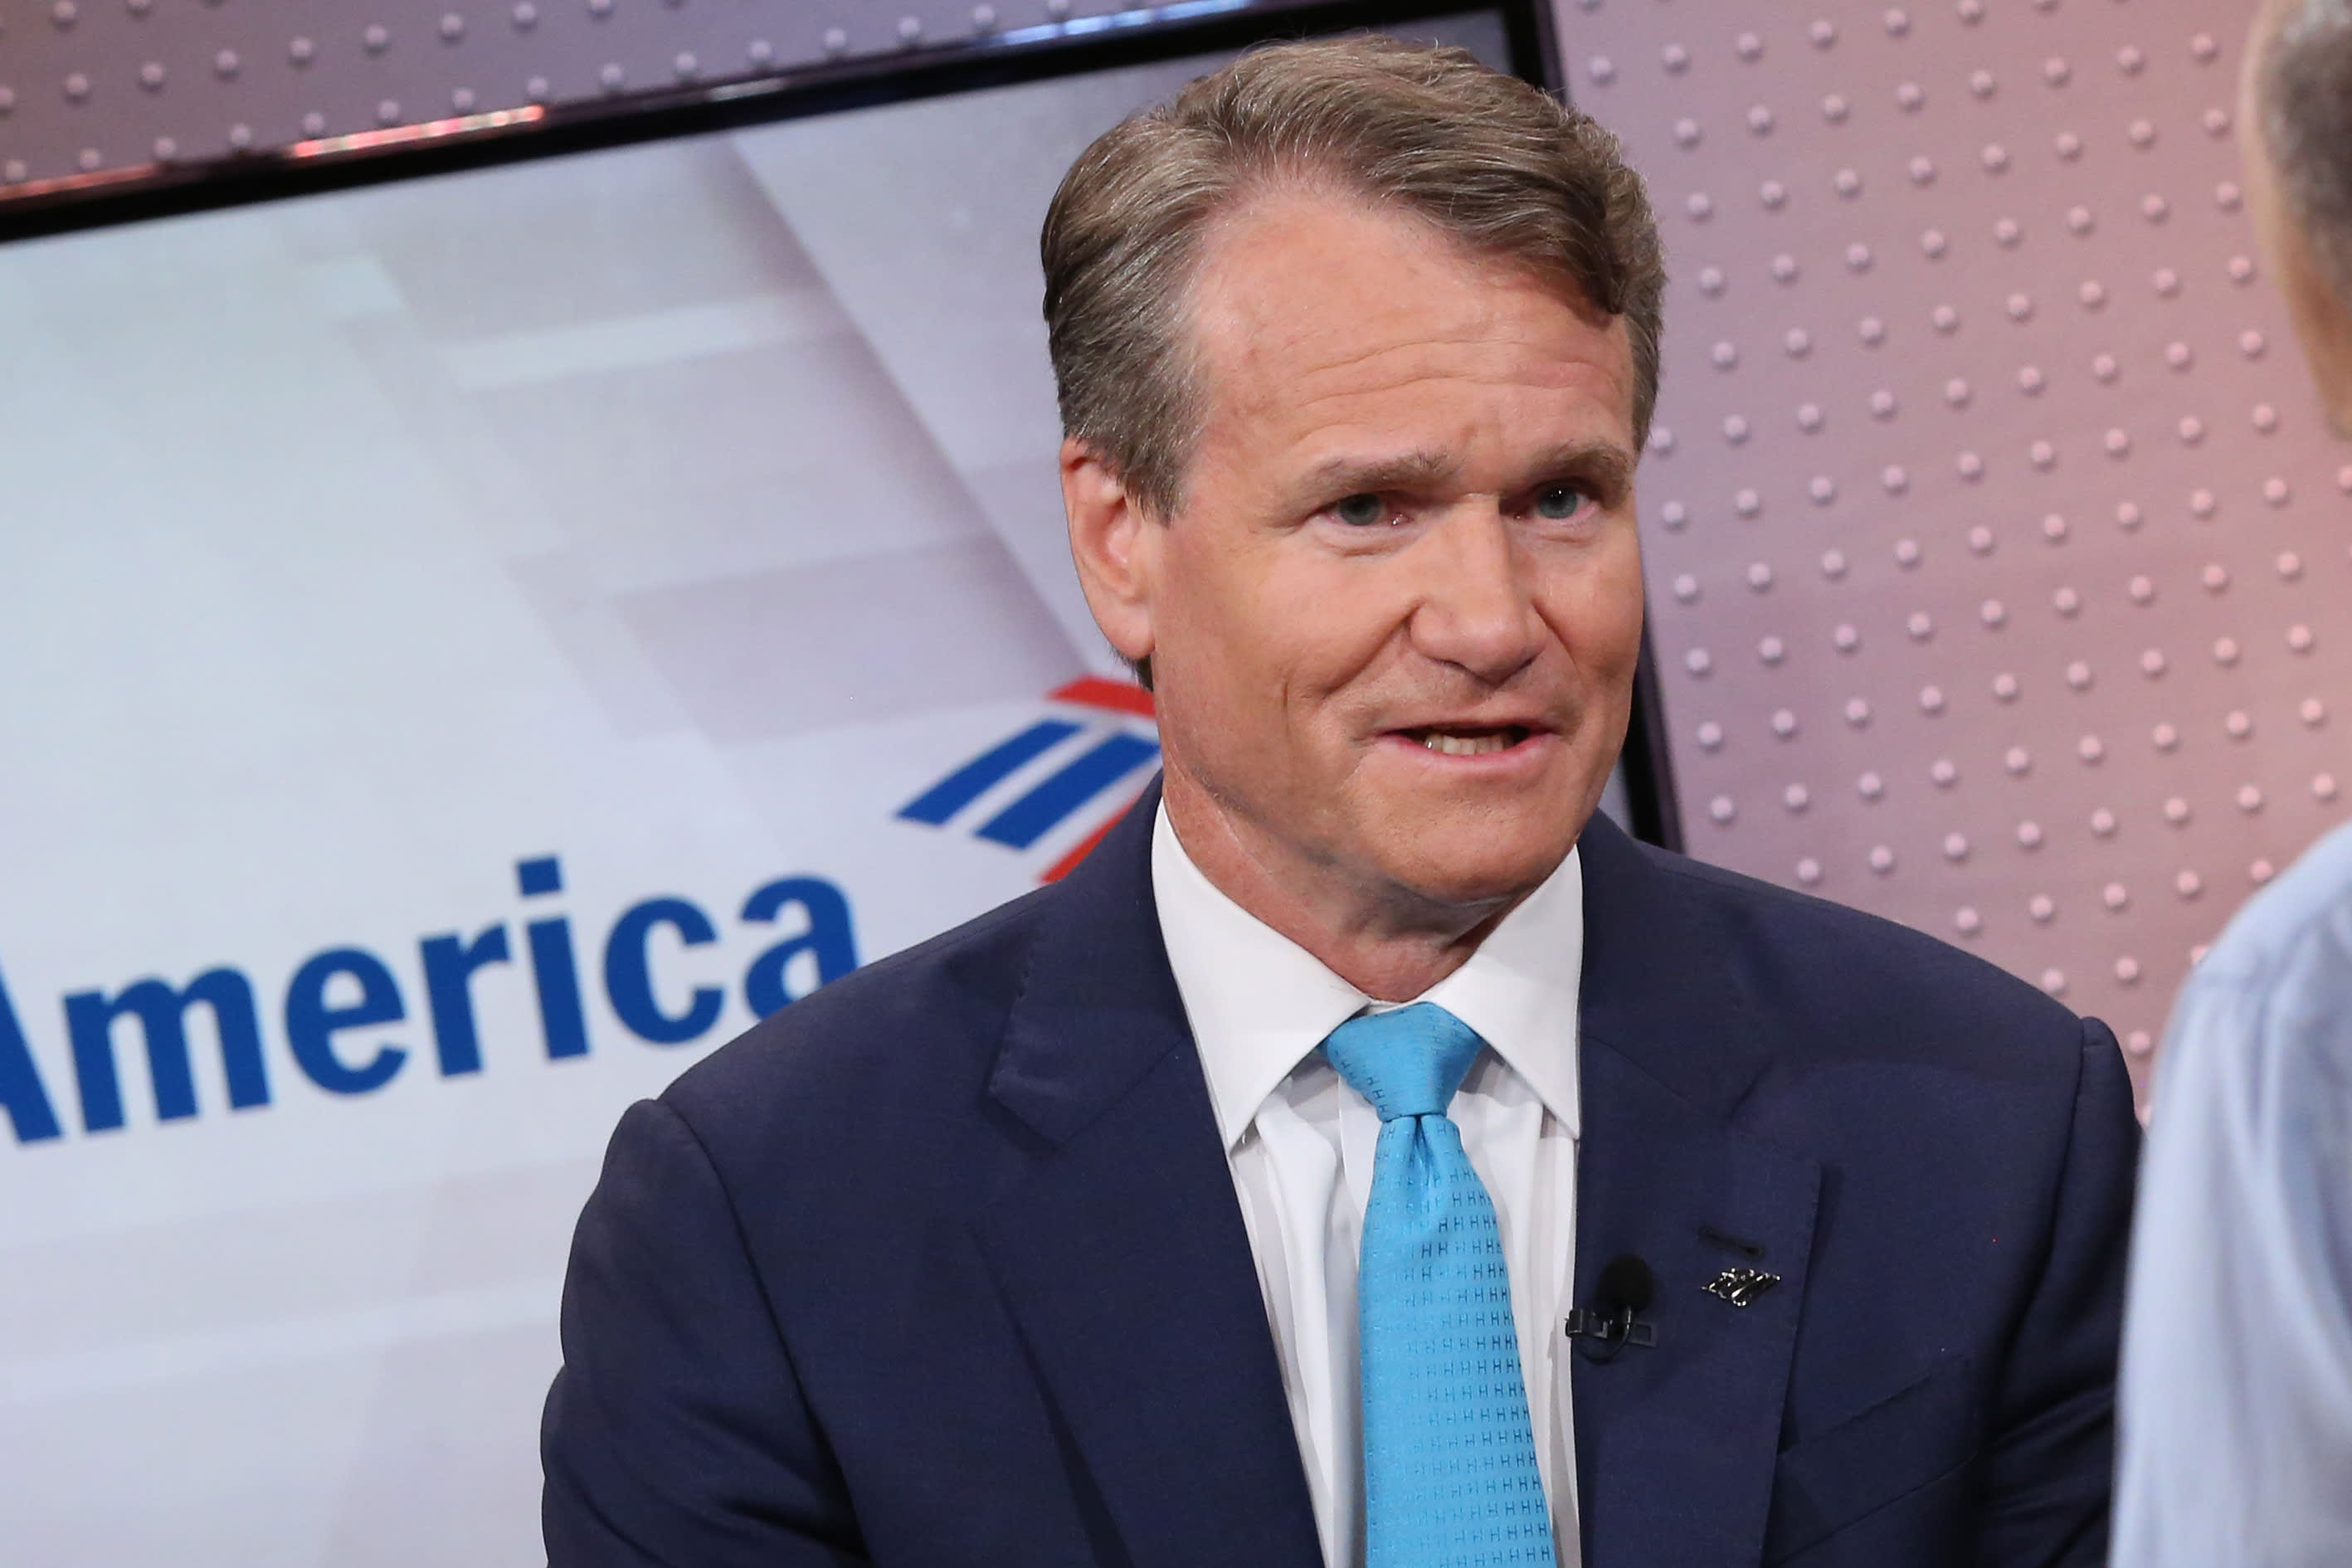 Bank of America is raising its minimum wage for employees to $20